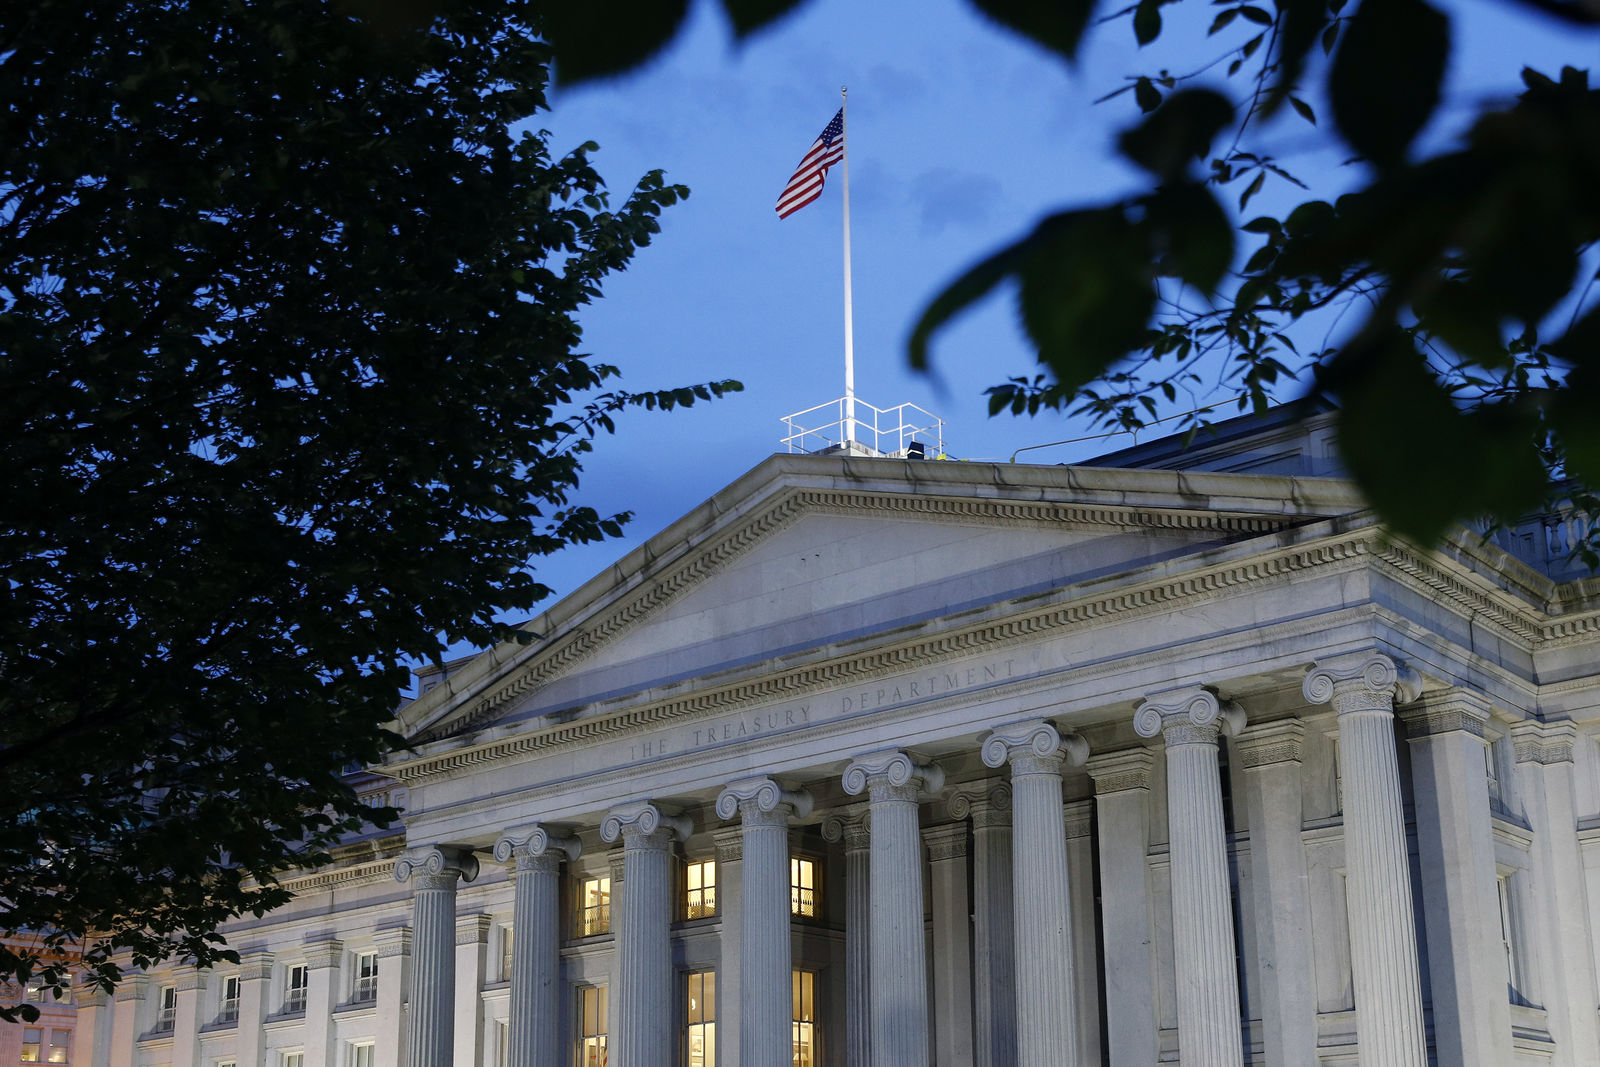 File-This Thursday, June 6, 2019, photo shows the U.S. Treasury Department building at dusk, in Washington.{ } (AP Photo/Patrick Semansky, File)